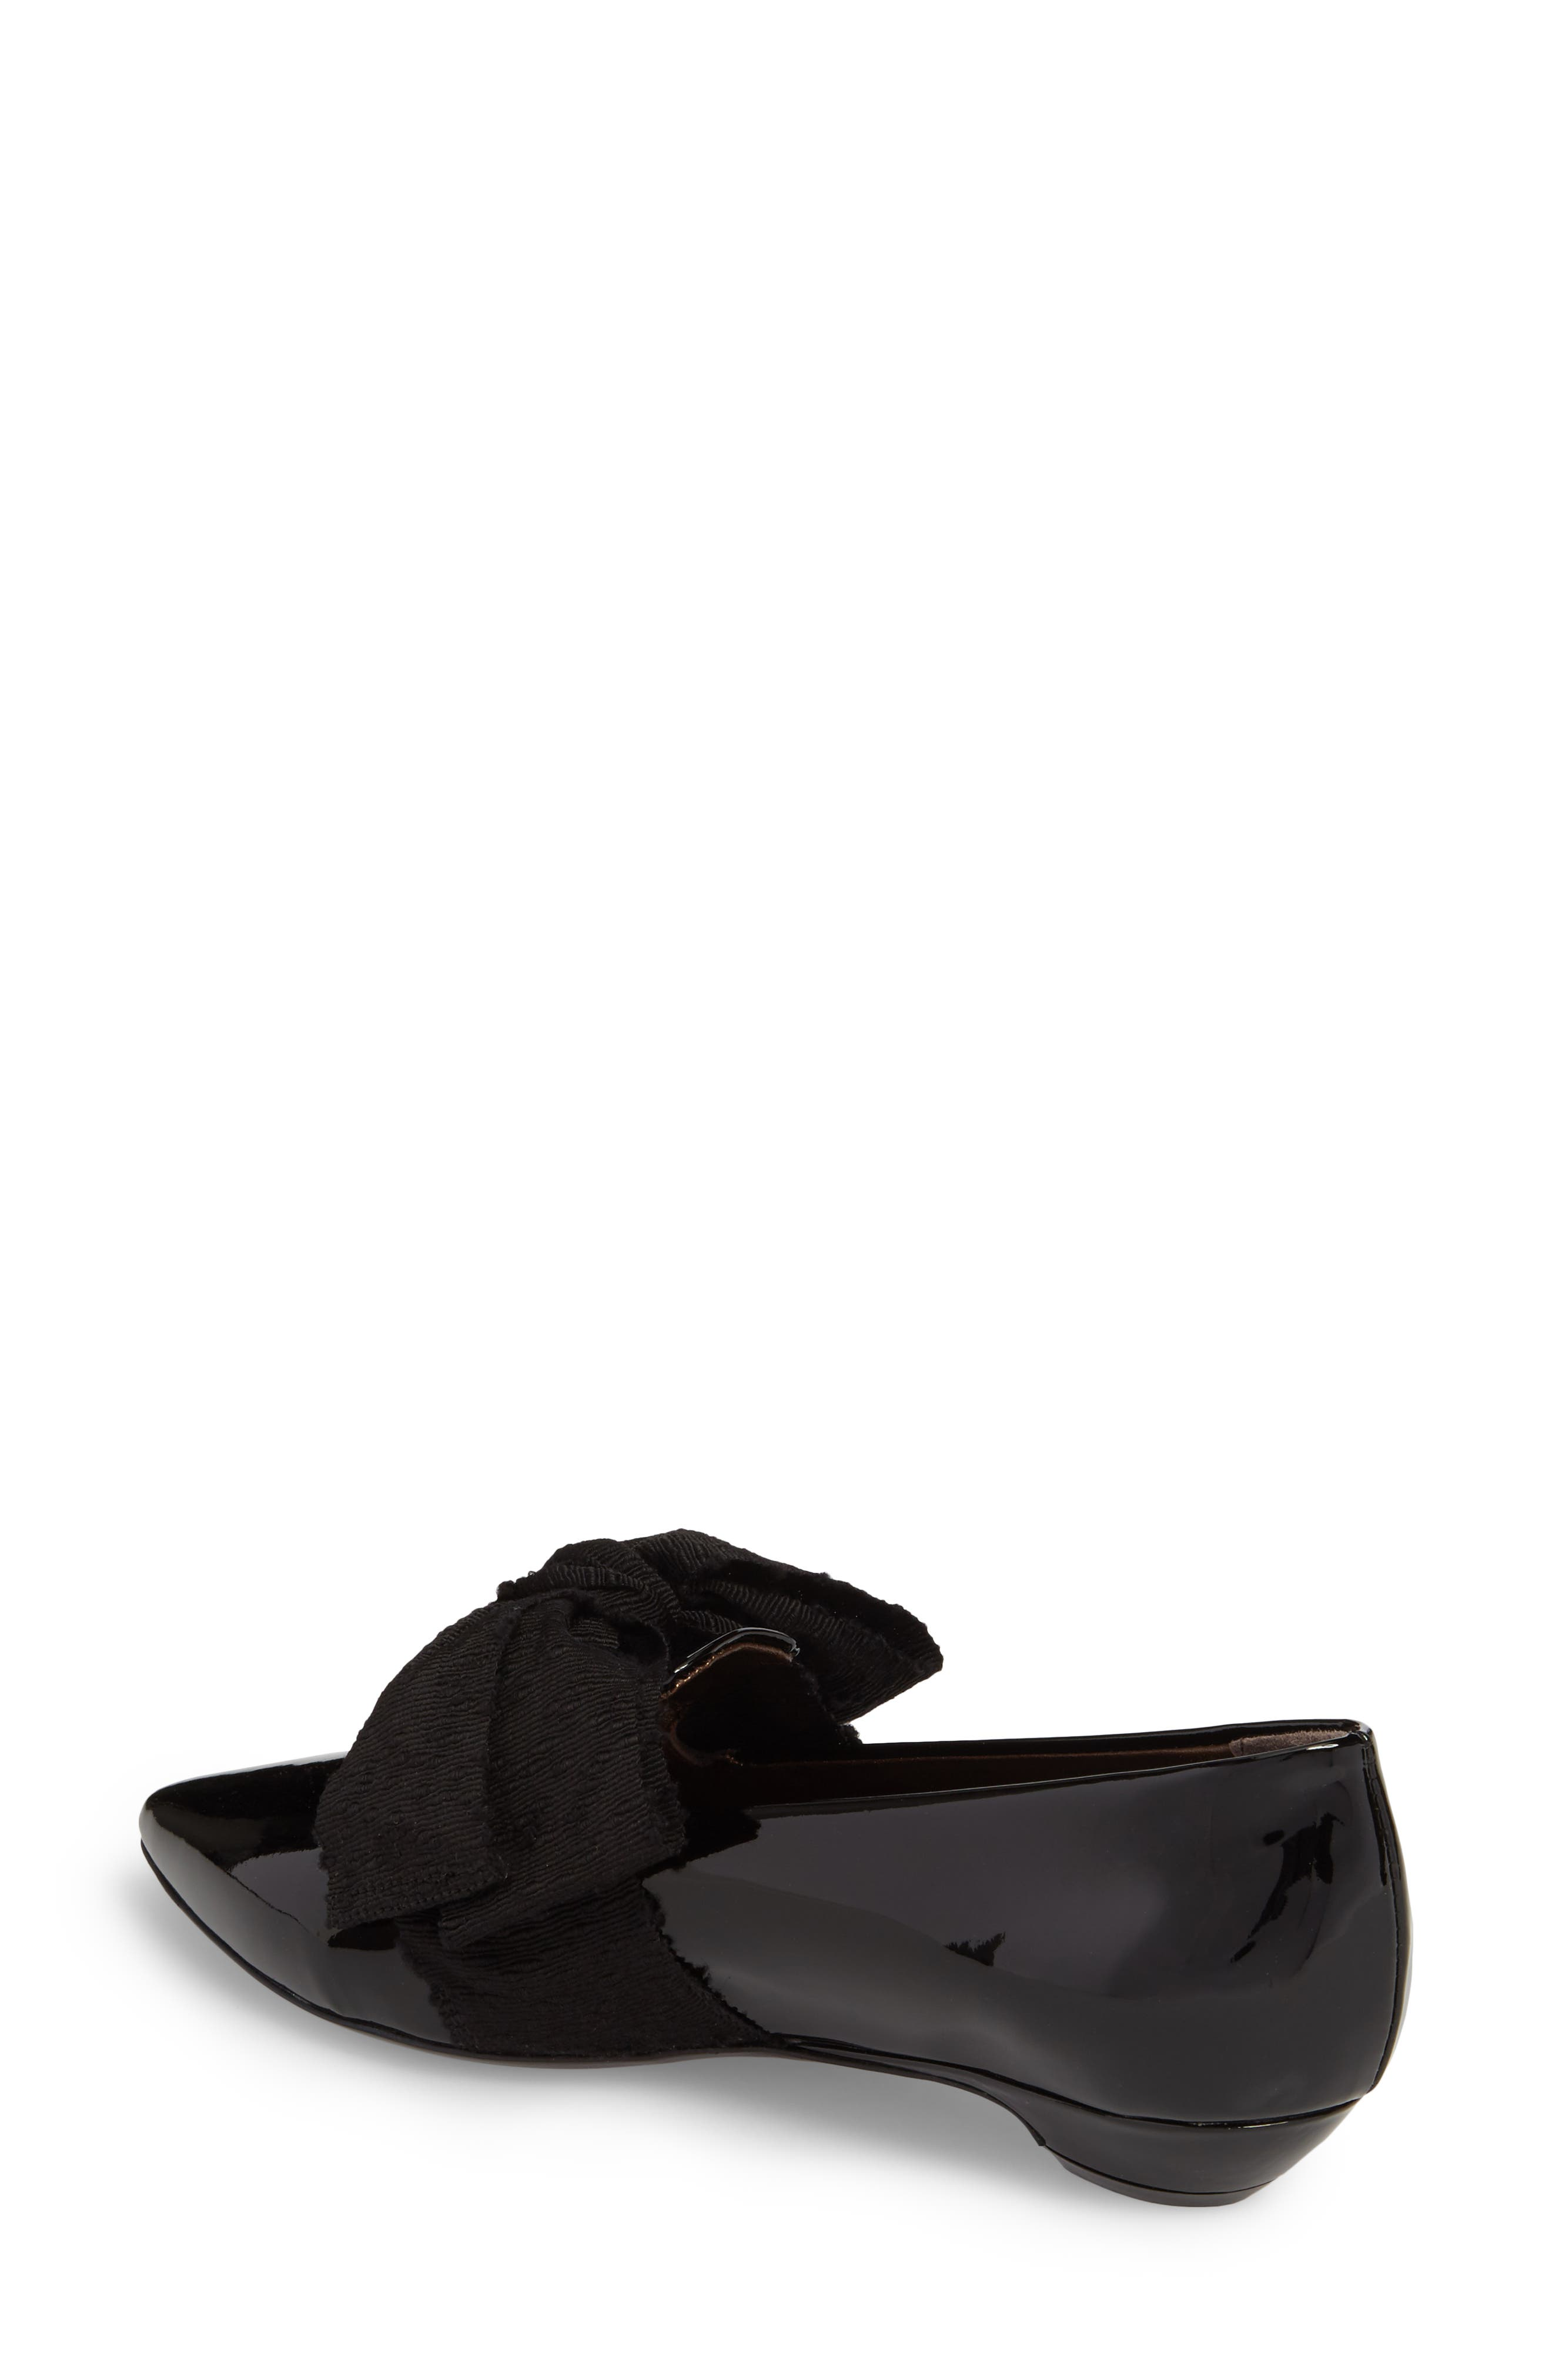 Maggie Bow Loafer,                             Alternate thumbnail 2, color,                             001